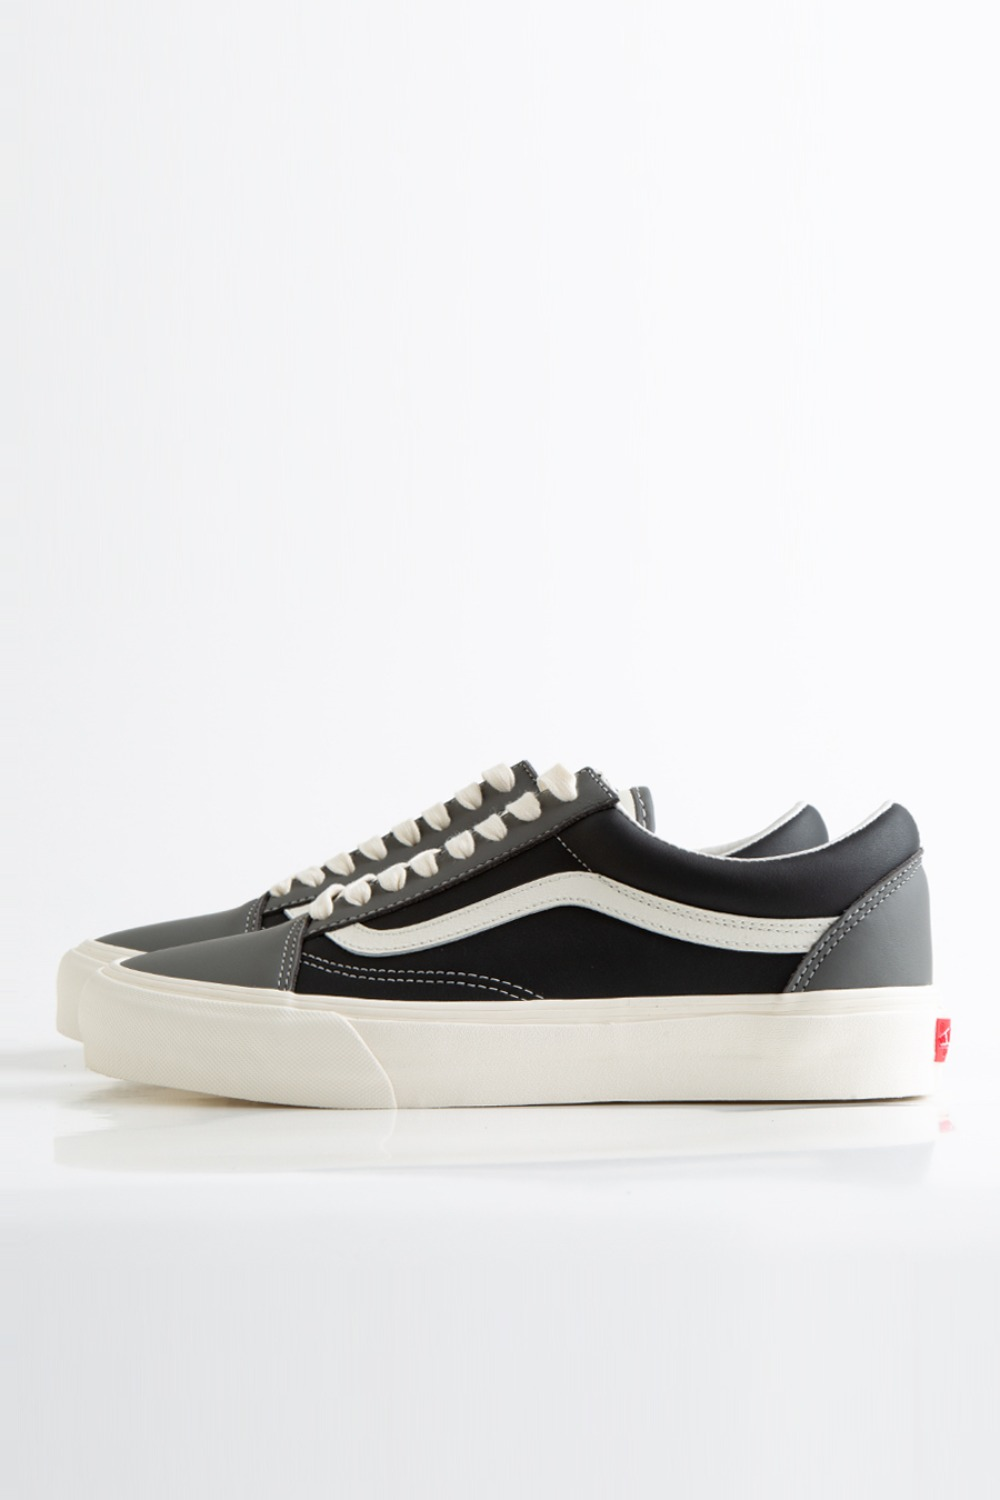 OLD SKOOL VLT LX(LEATHER) CHARCOAL/BLACK